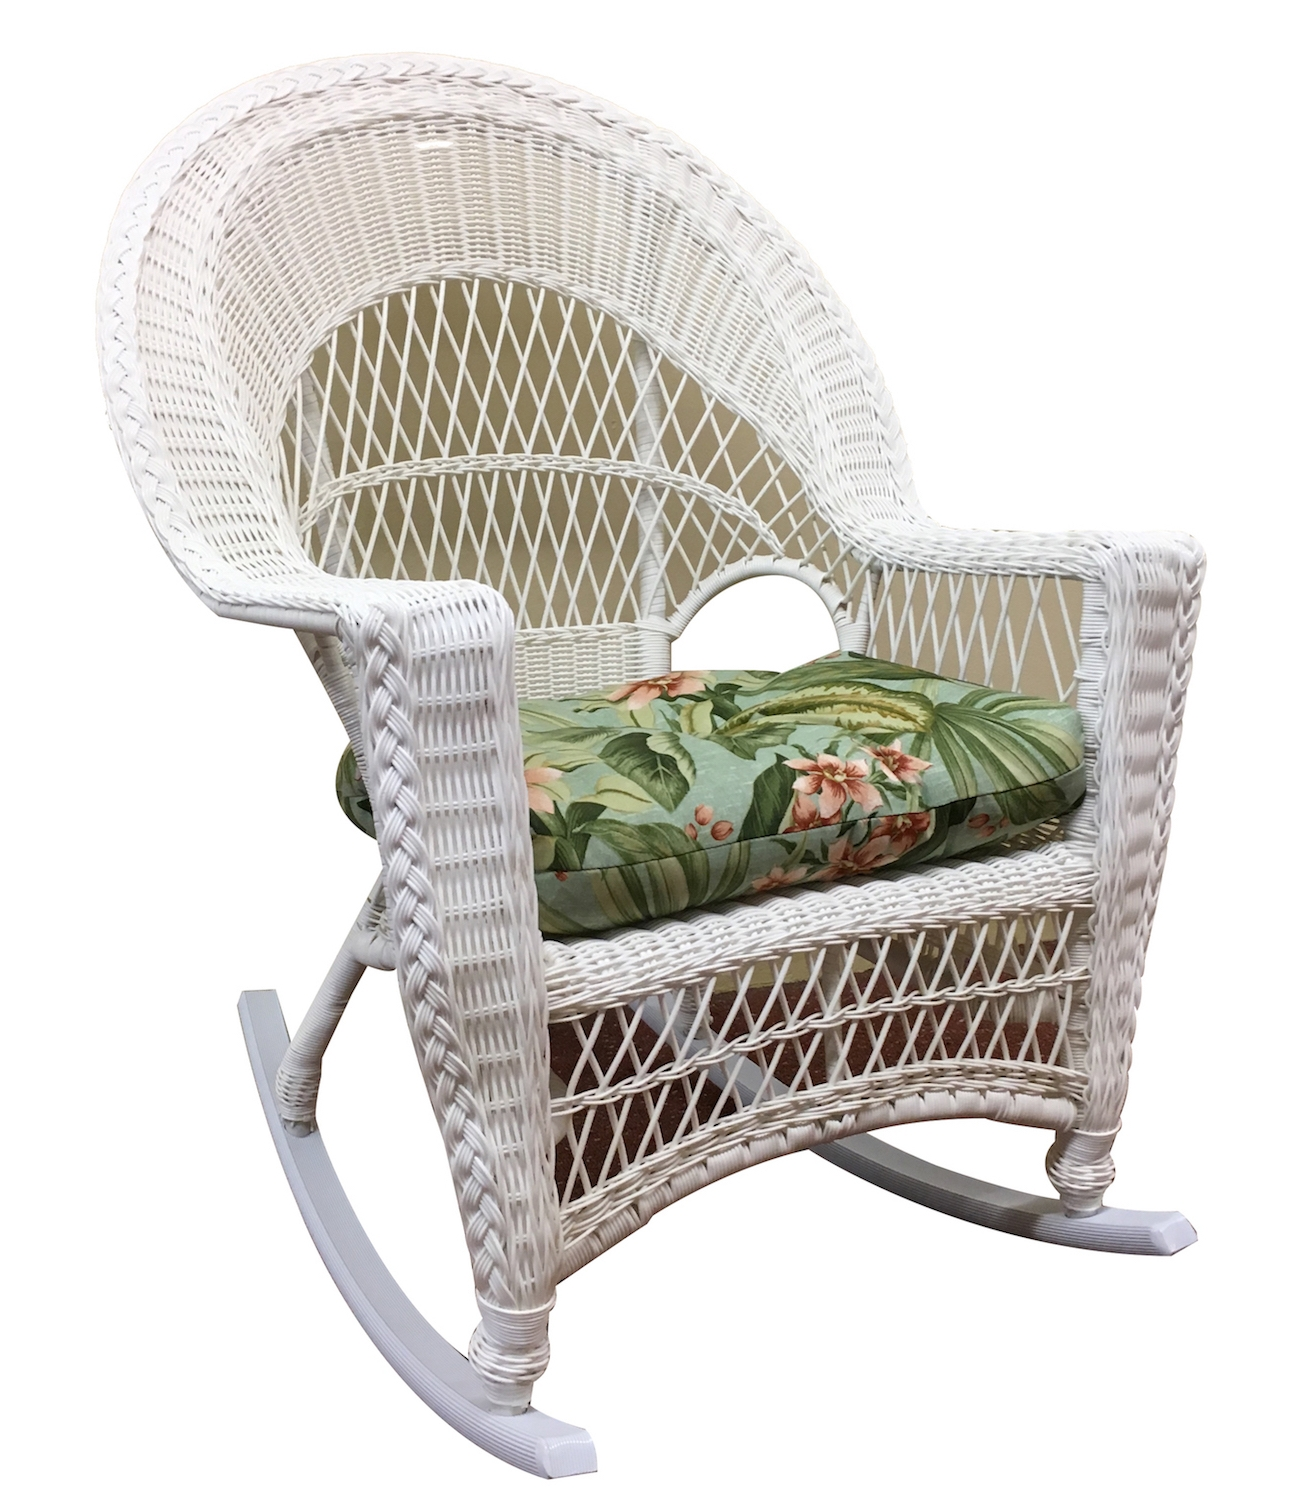 Most Current Wicker Rocking Chair Design Outdoor Swivel Rockers Black Agreeable With Regard To Outdoor Wicker Rocking Chairs (View 3 of 20)